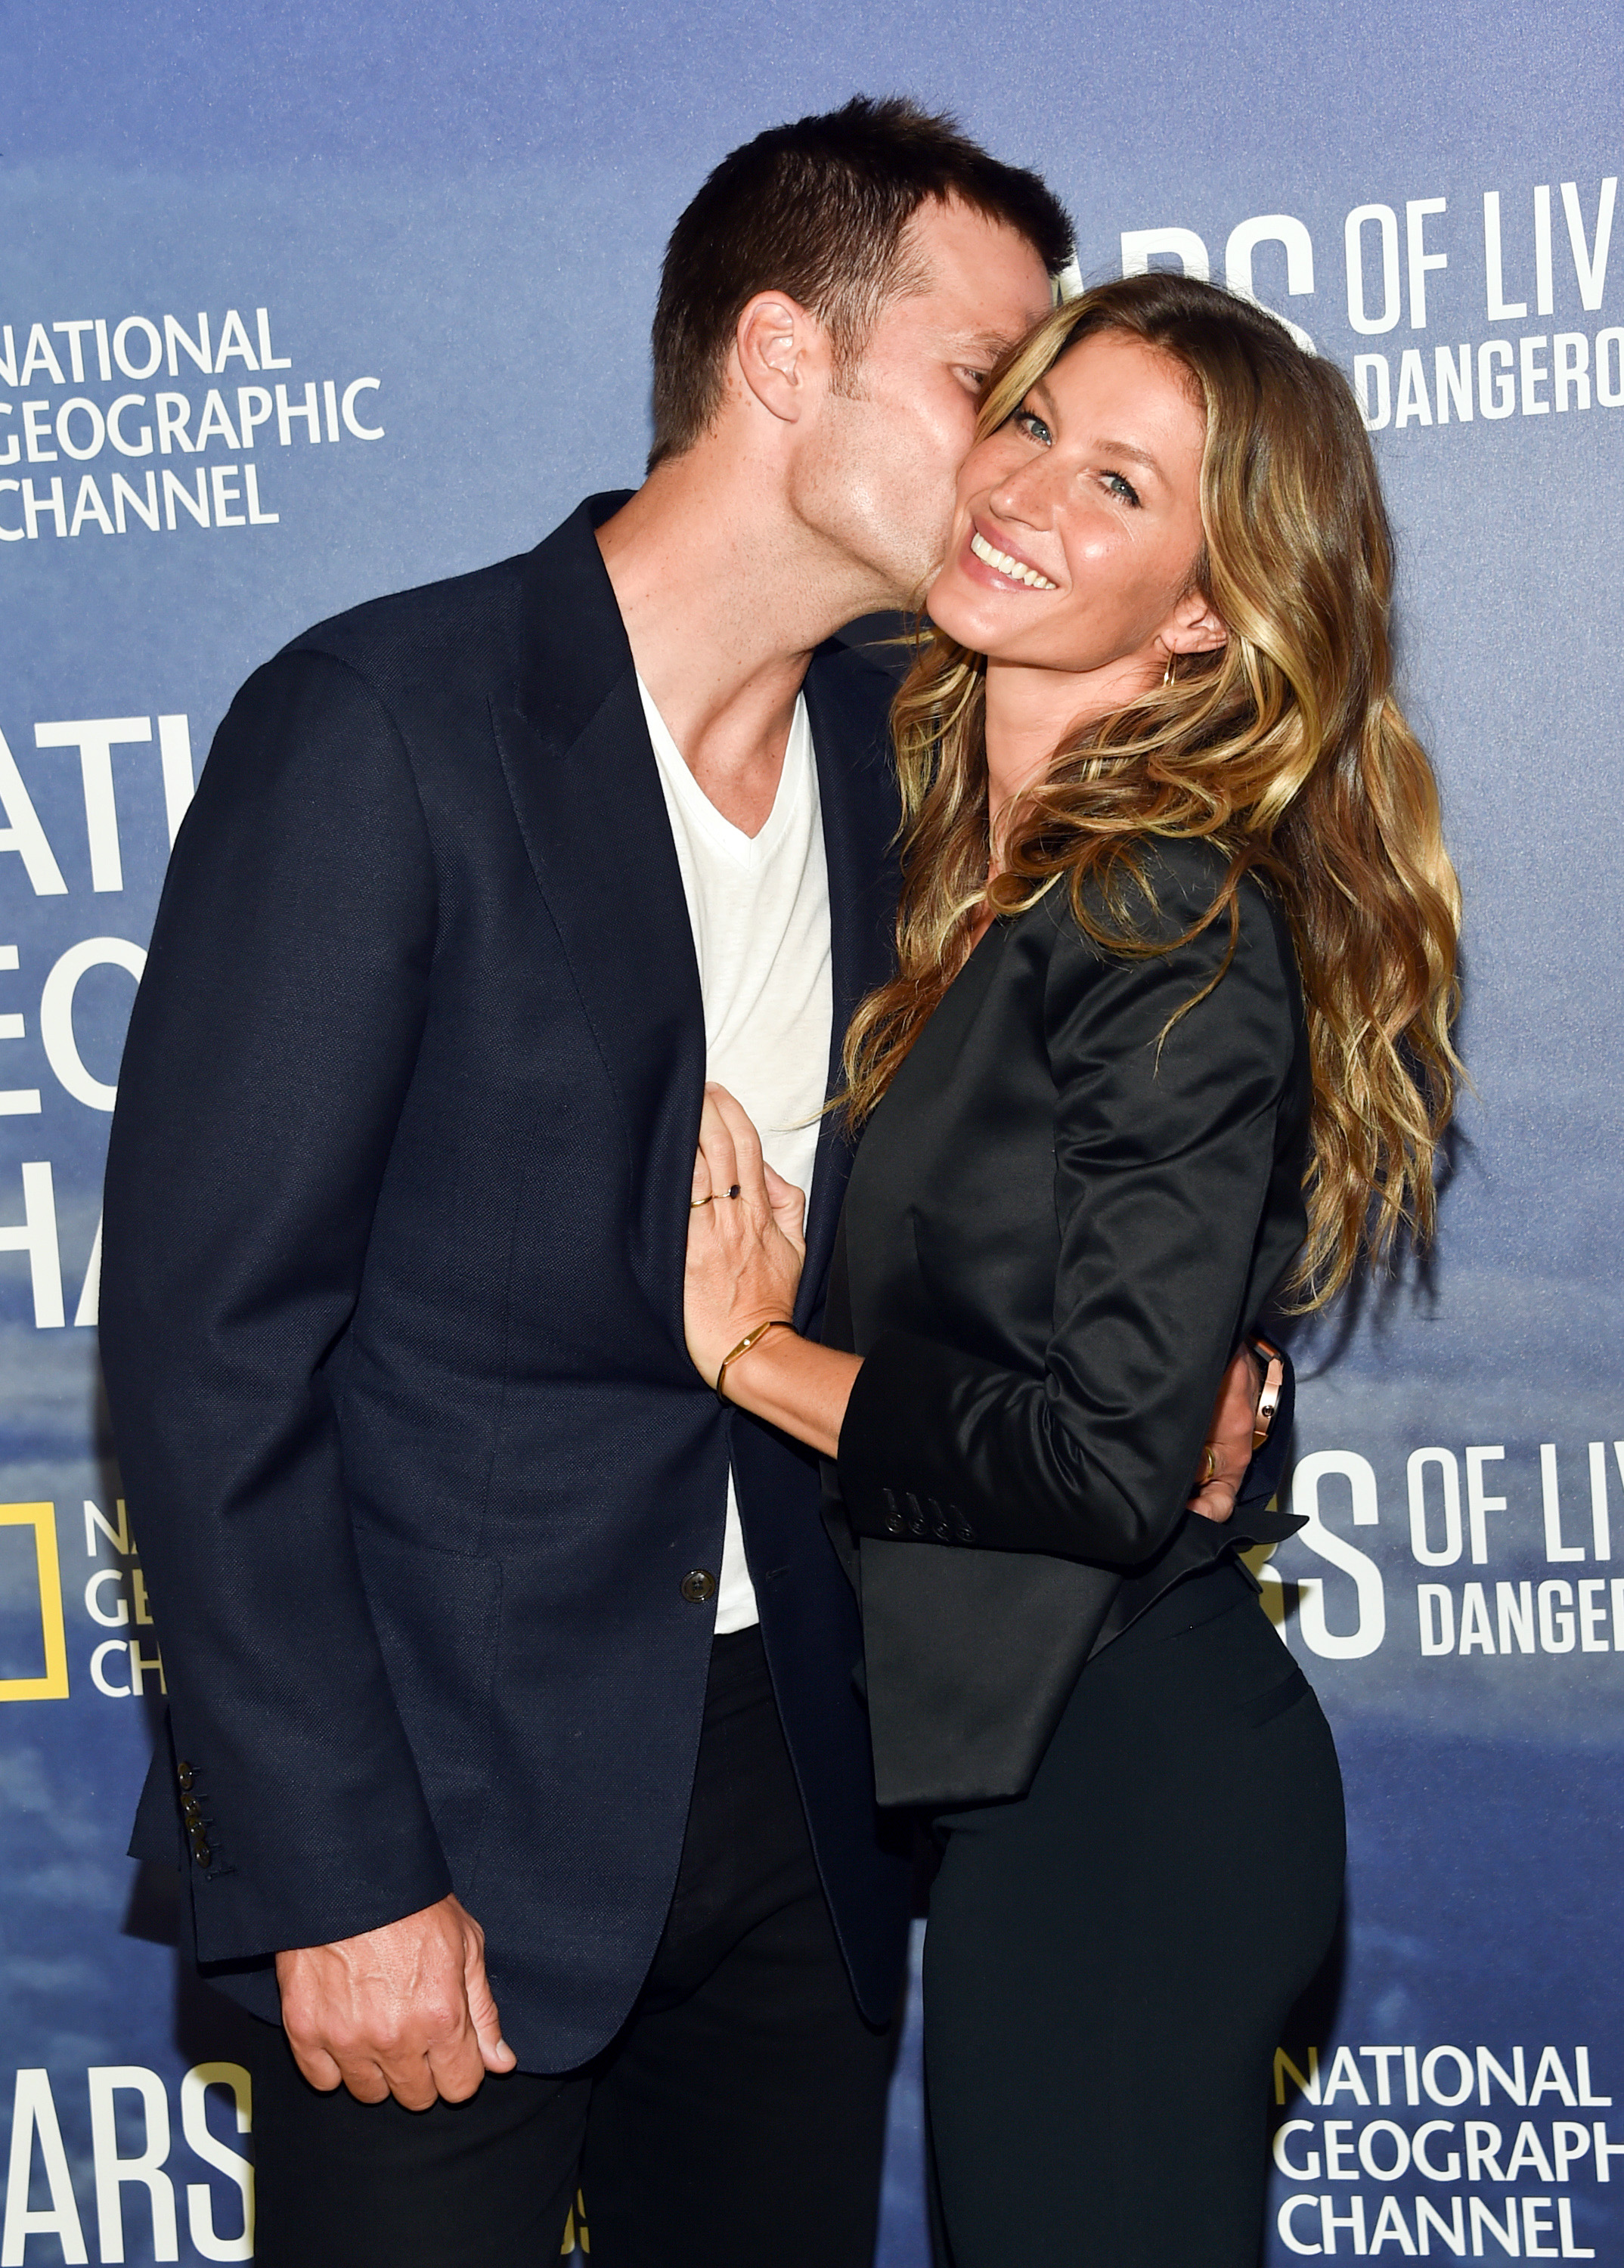 """Model Gisele Bundchen and her husband, NFL quarterback Tom Brady, attend the premiere of National Geographic Channel's, """"Years of Living Dangerously,"""" at the American Museum of Natural History on Wednesday, Sept. 21, 2016, in New York. (Photo by Evan Agostini/Invision/AP)"""